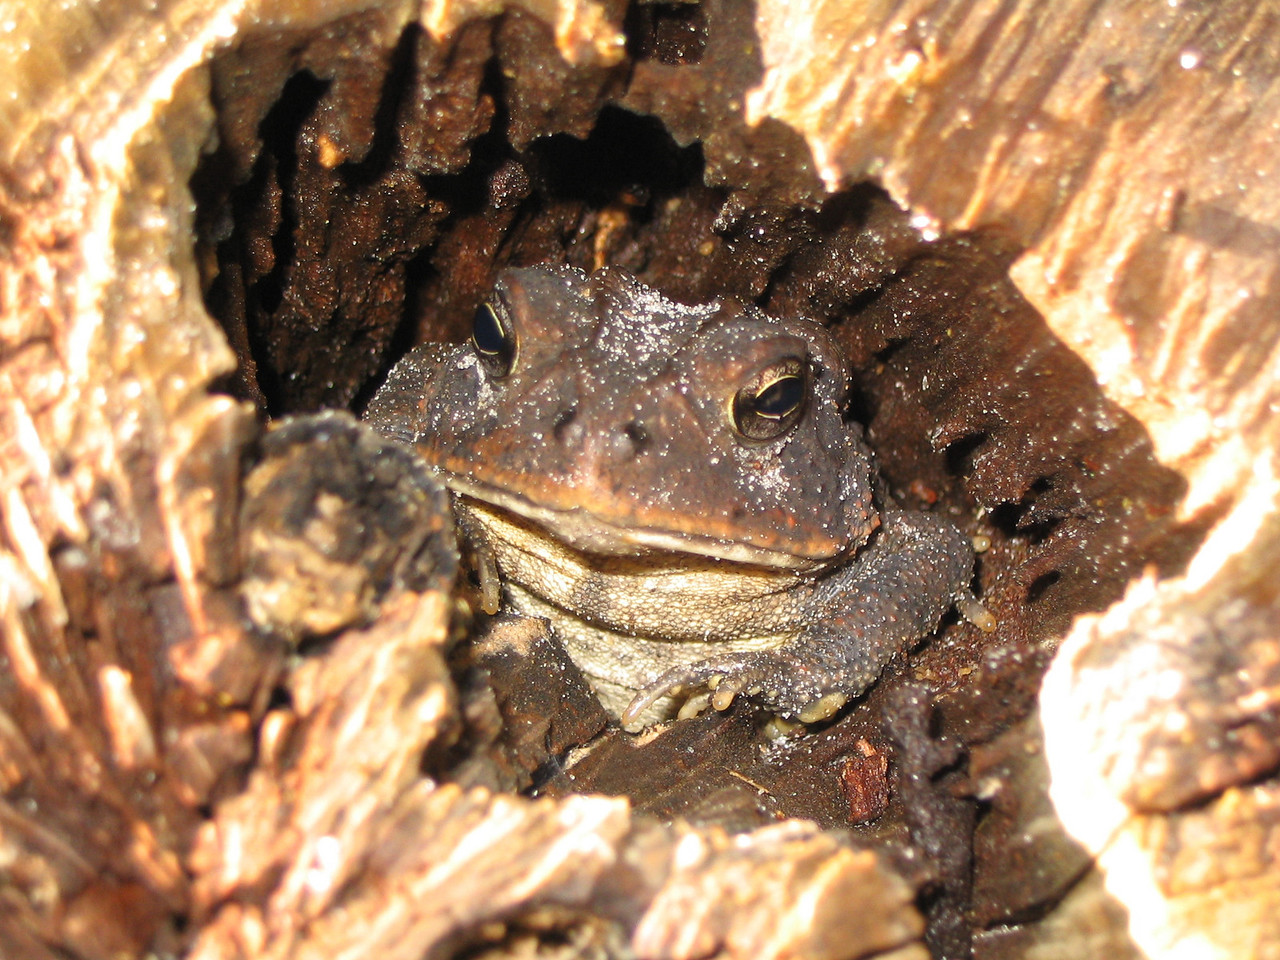 Oak toad<br /> PHOTO CREDIT: Brian OHalloran / Florida Trail Association